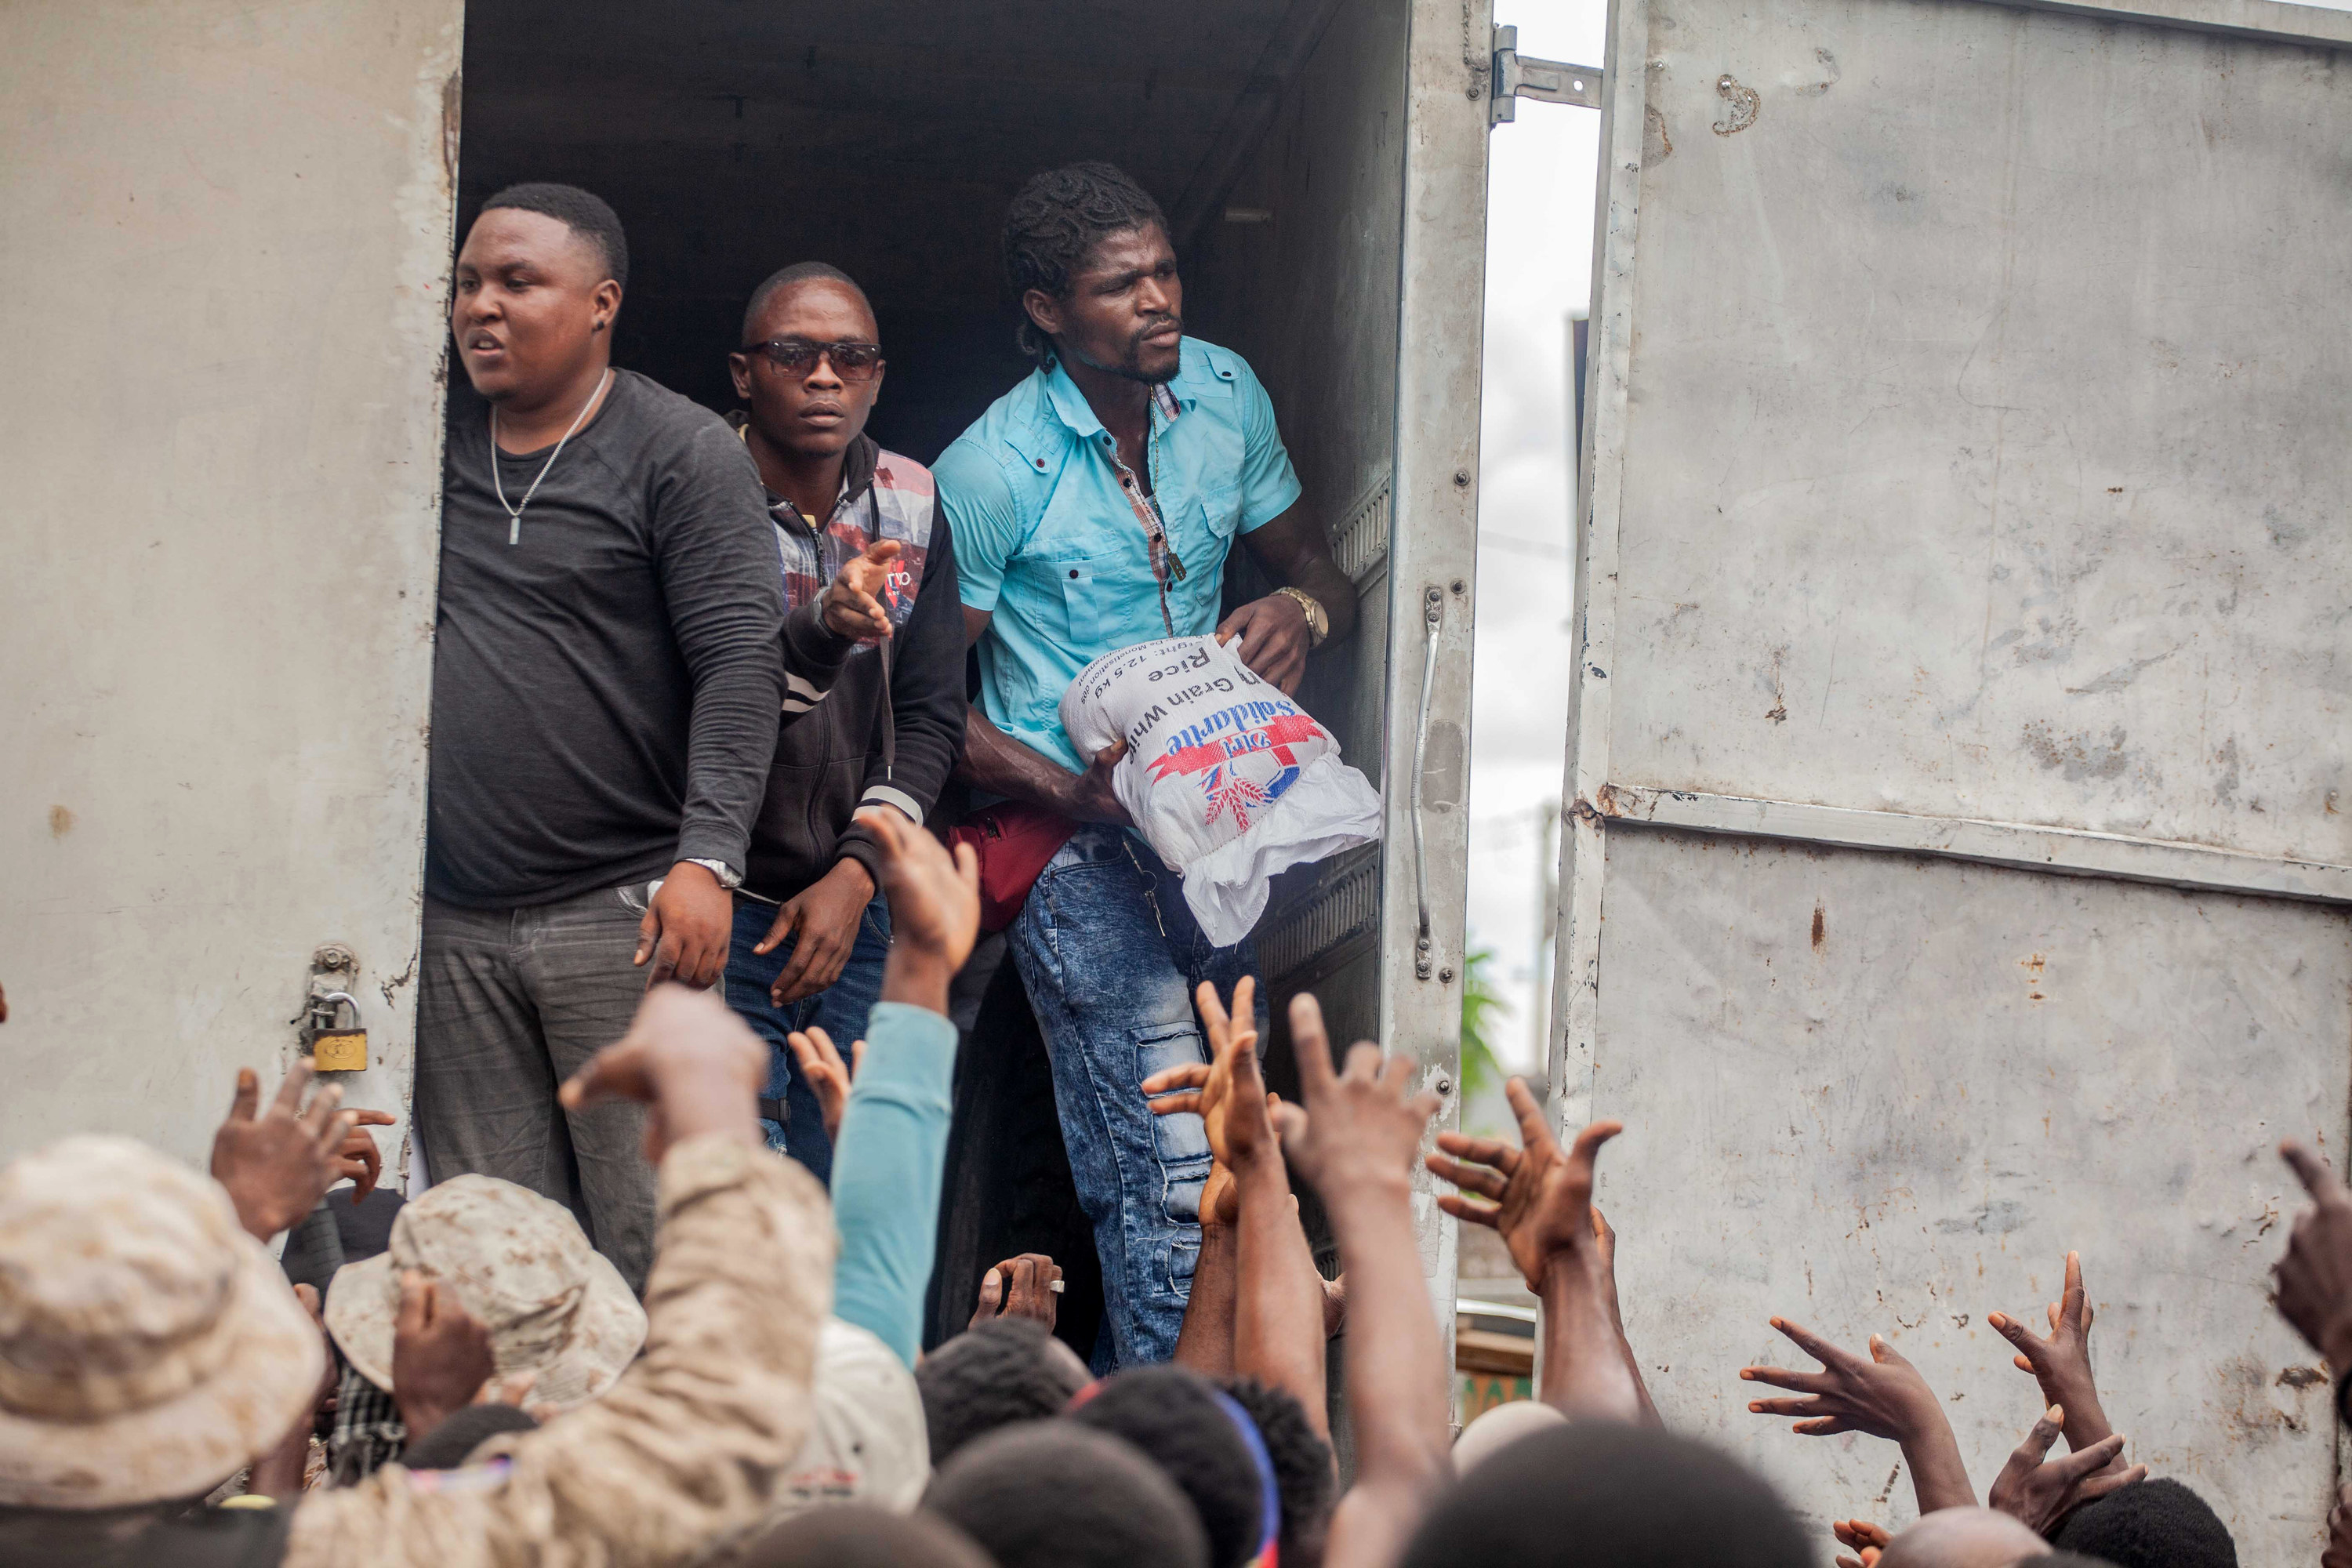 Arms from a crowd of Haiti residents reach up toward a man carrying a bag of rice